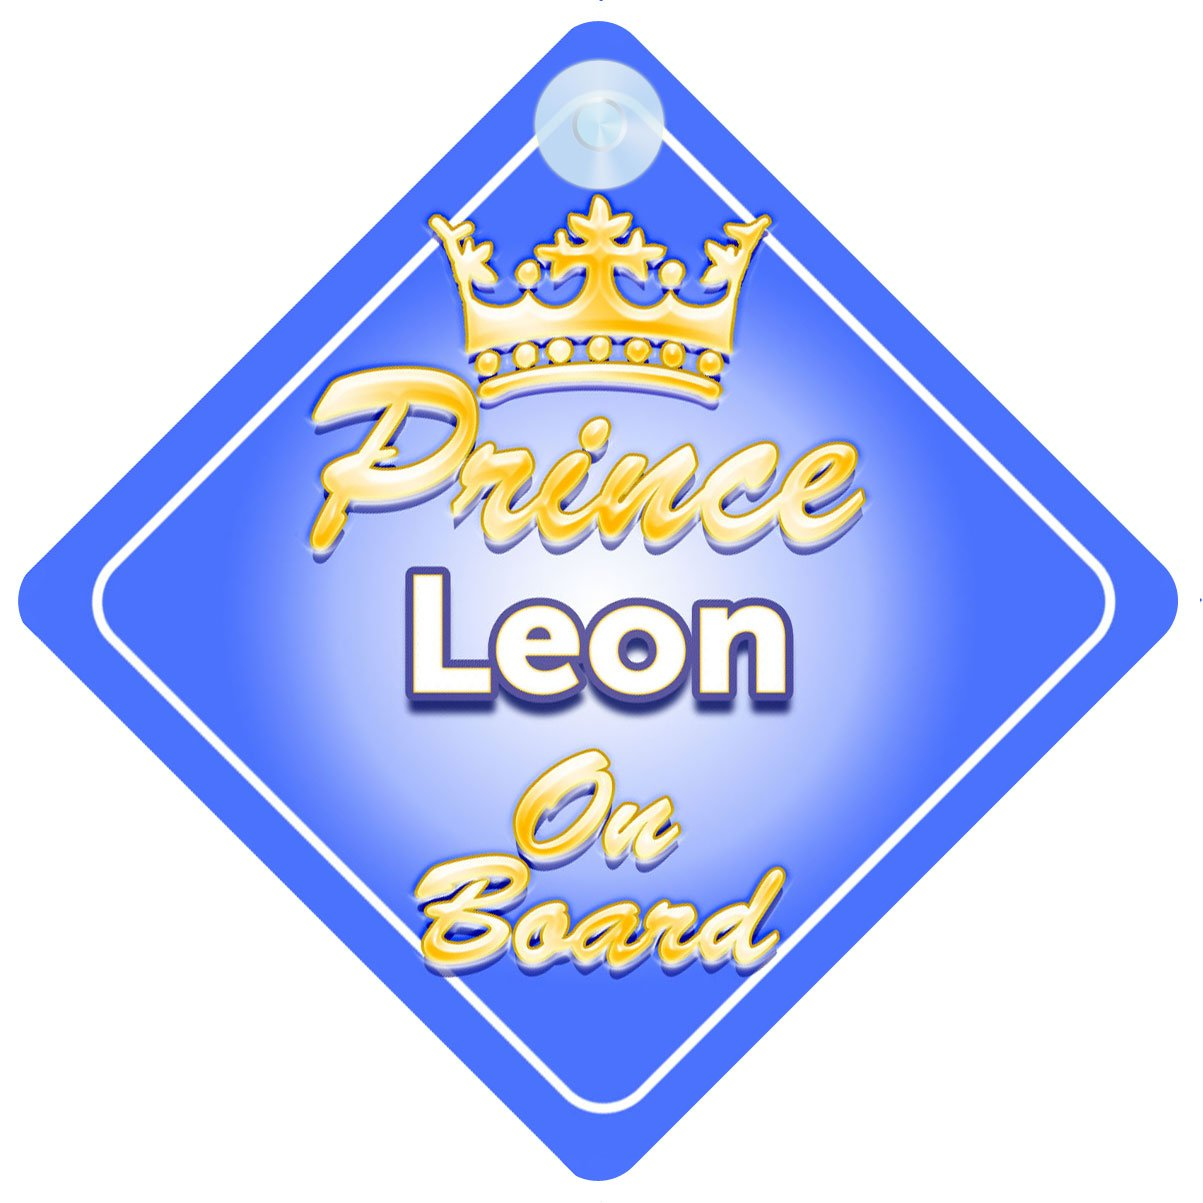 Crown Prince Leon On Board Personalised Baby / Child Boys Car Sign Quality Goods Ltd